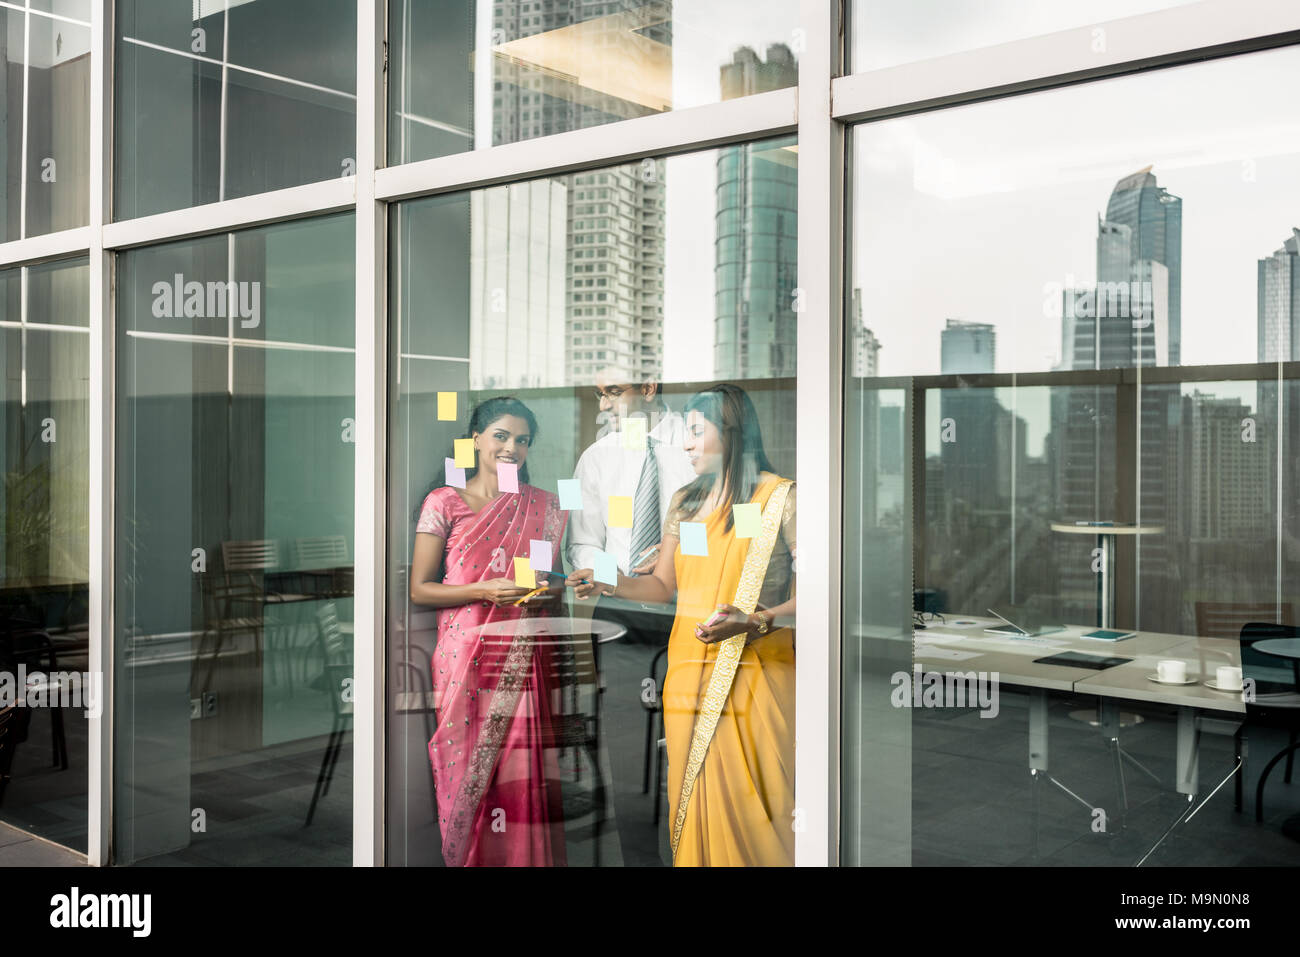 Indian employees sticking reminders on glass wall in the office - Stock Image